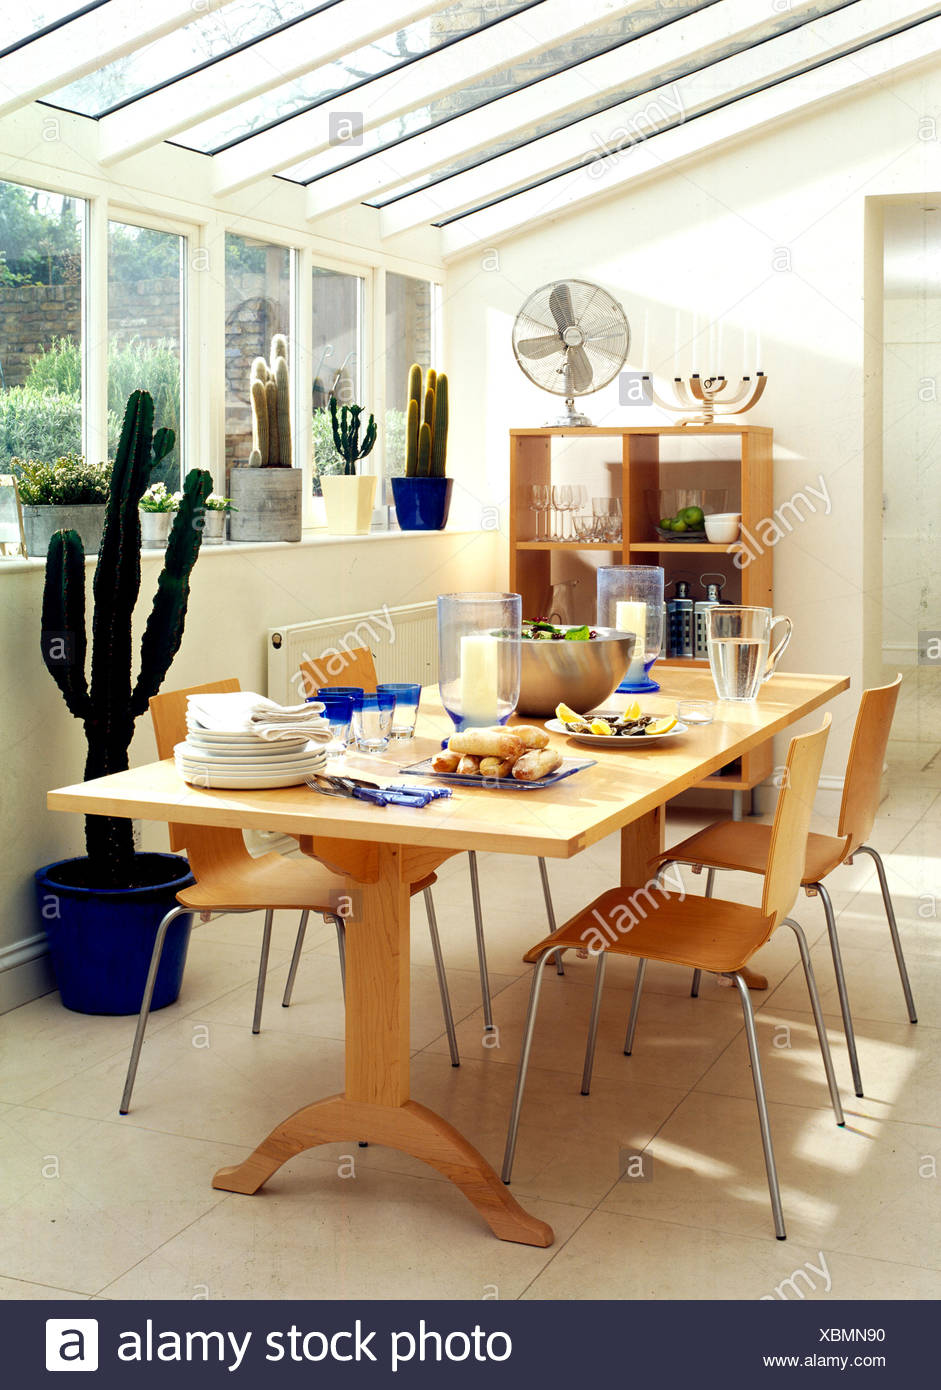 Incroyable Pale Wood Furniture And Cacti In Conservatory Used As Diningroom